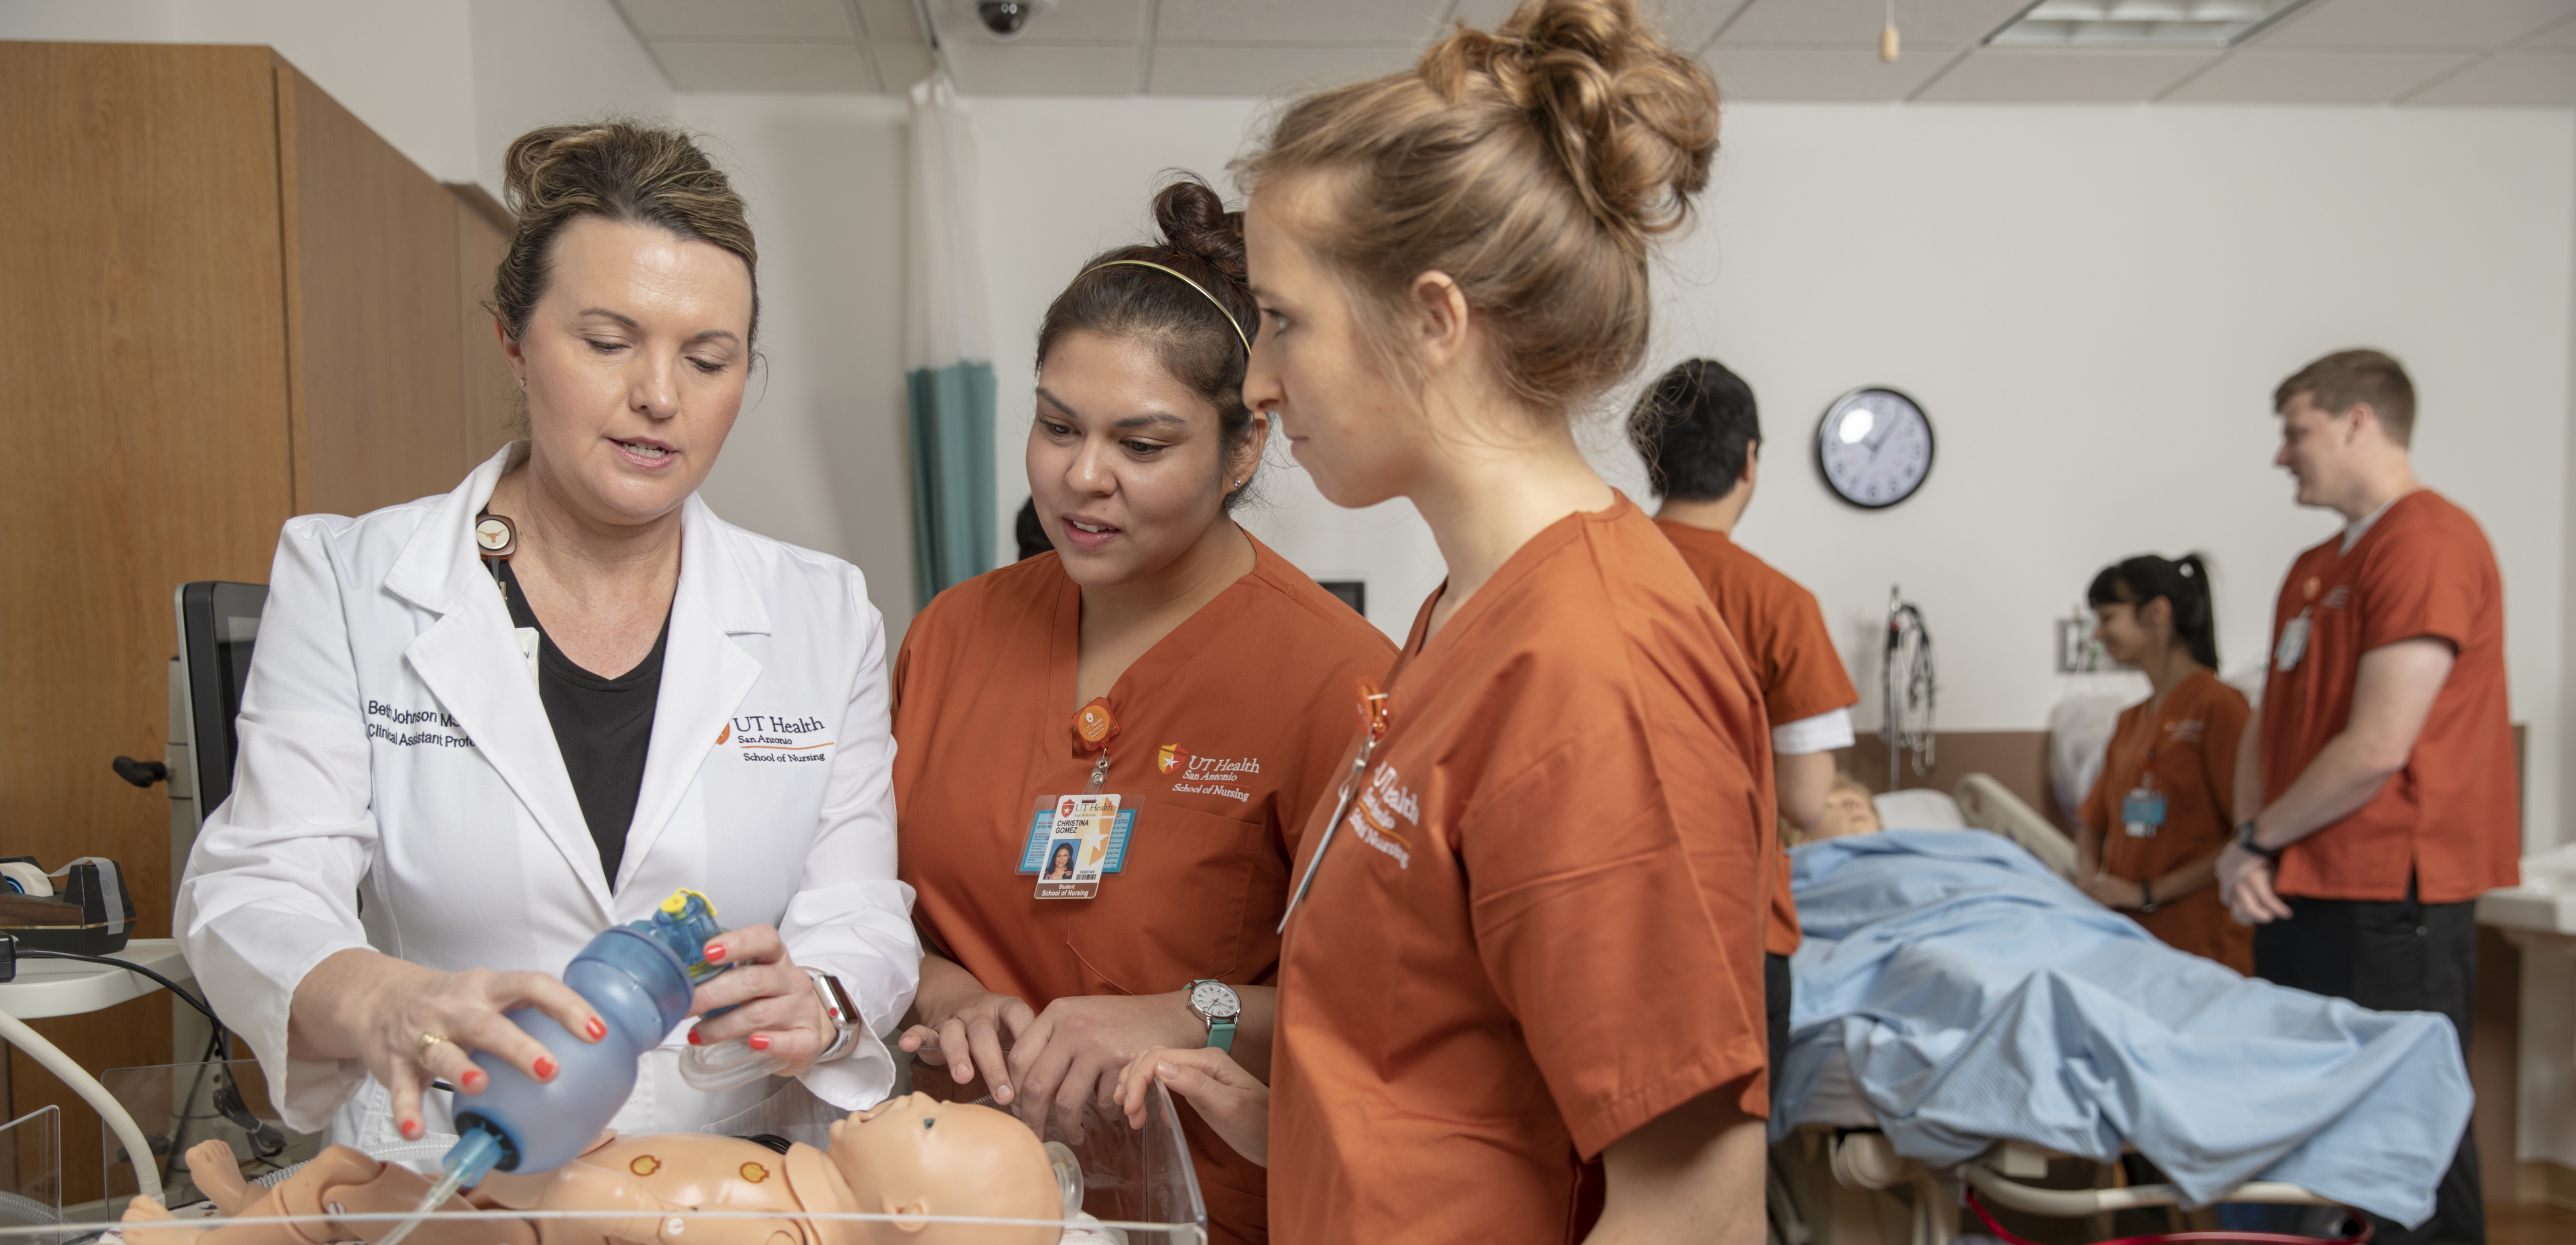 School of Nursing - UT Health San Antonio